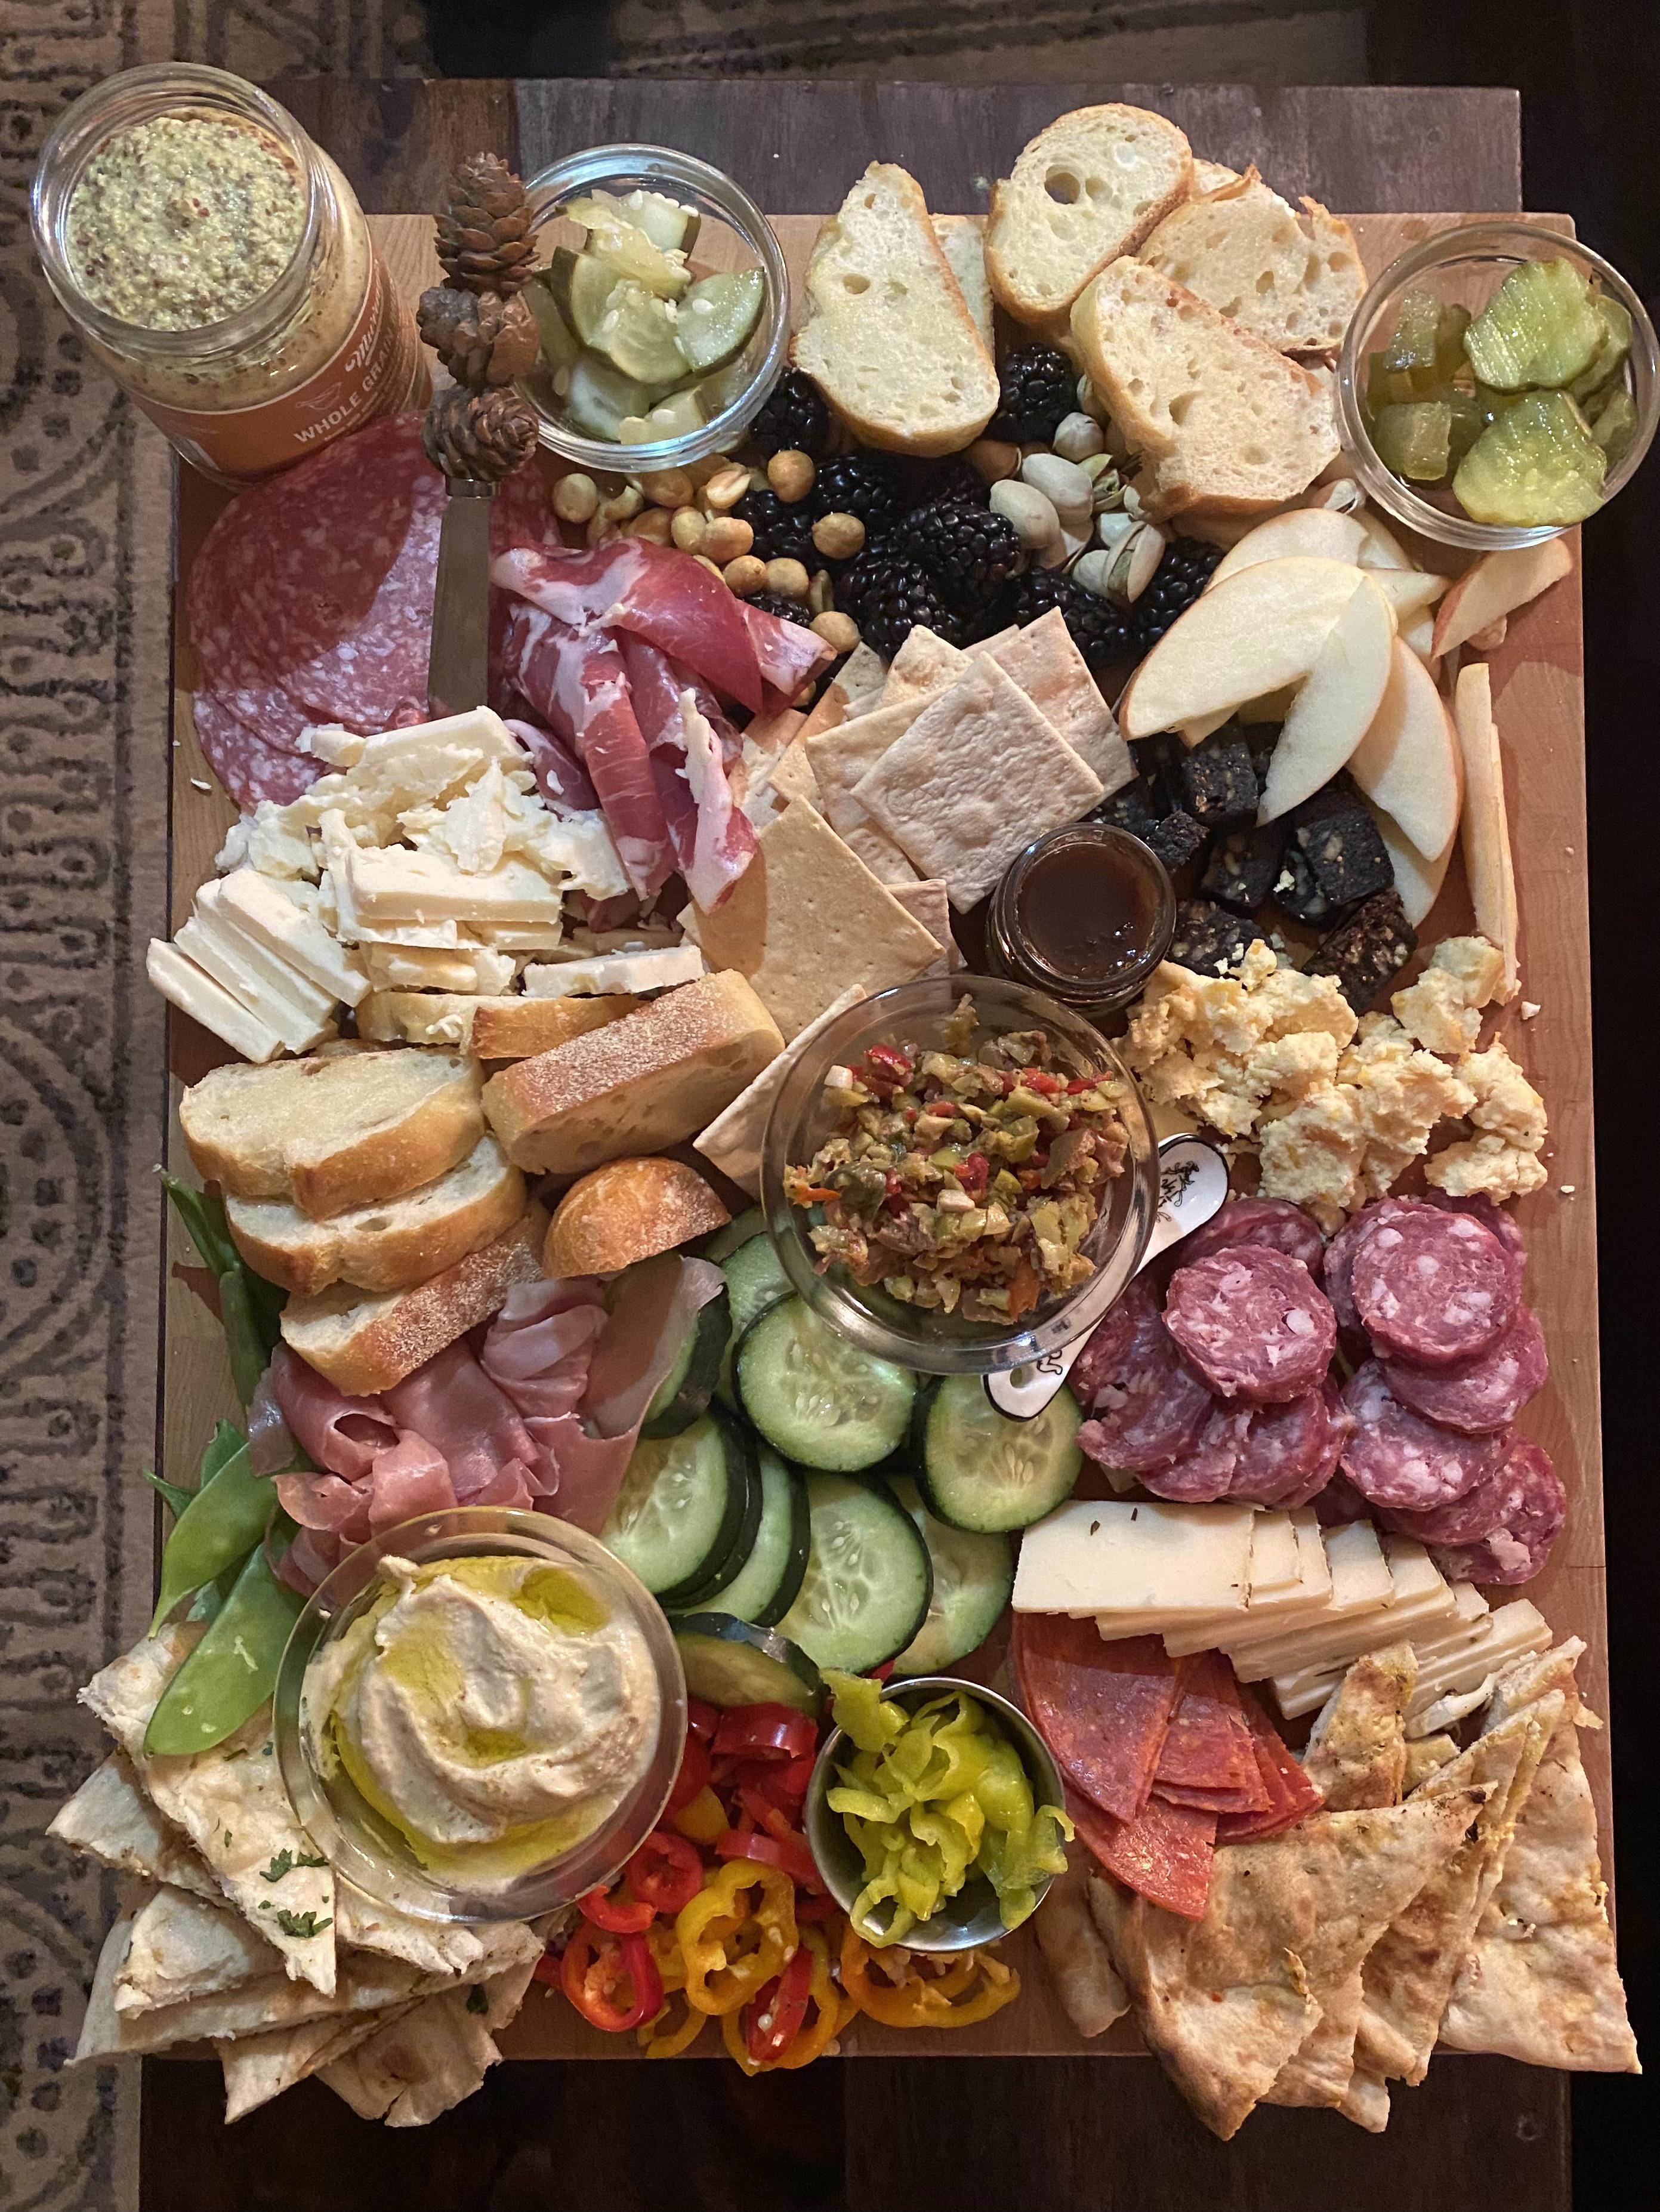 I made a charcuterie board for my birthday